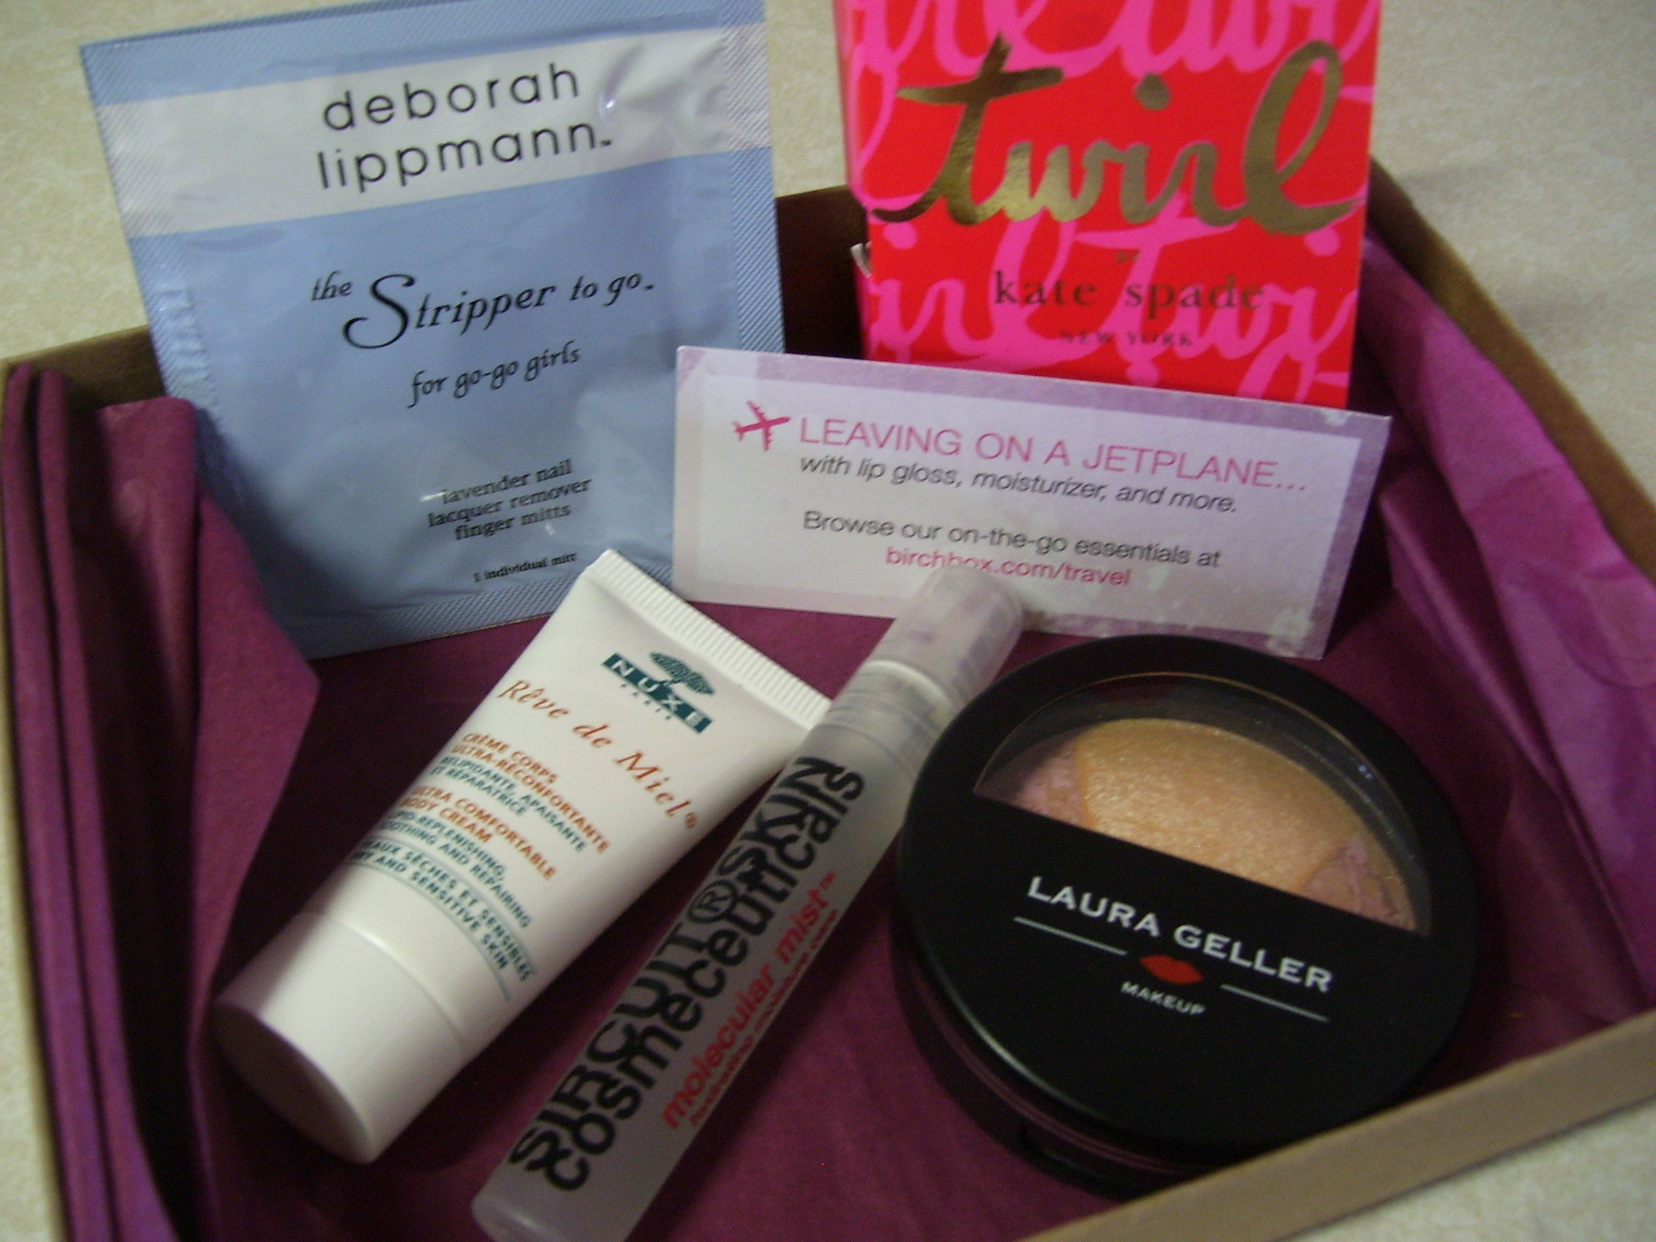 Final Thoughts on My June 2011 Birchbox Products